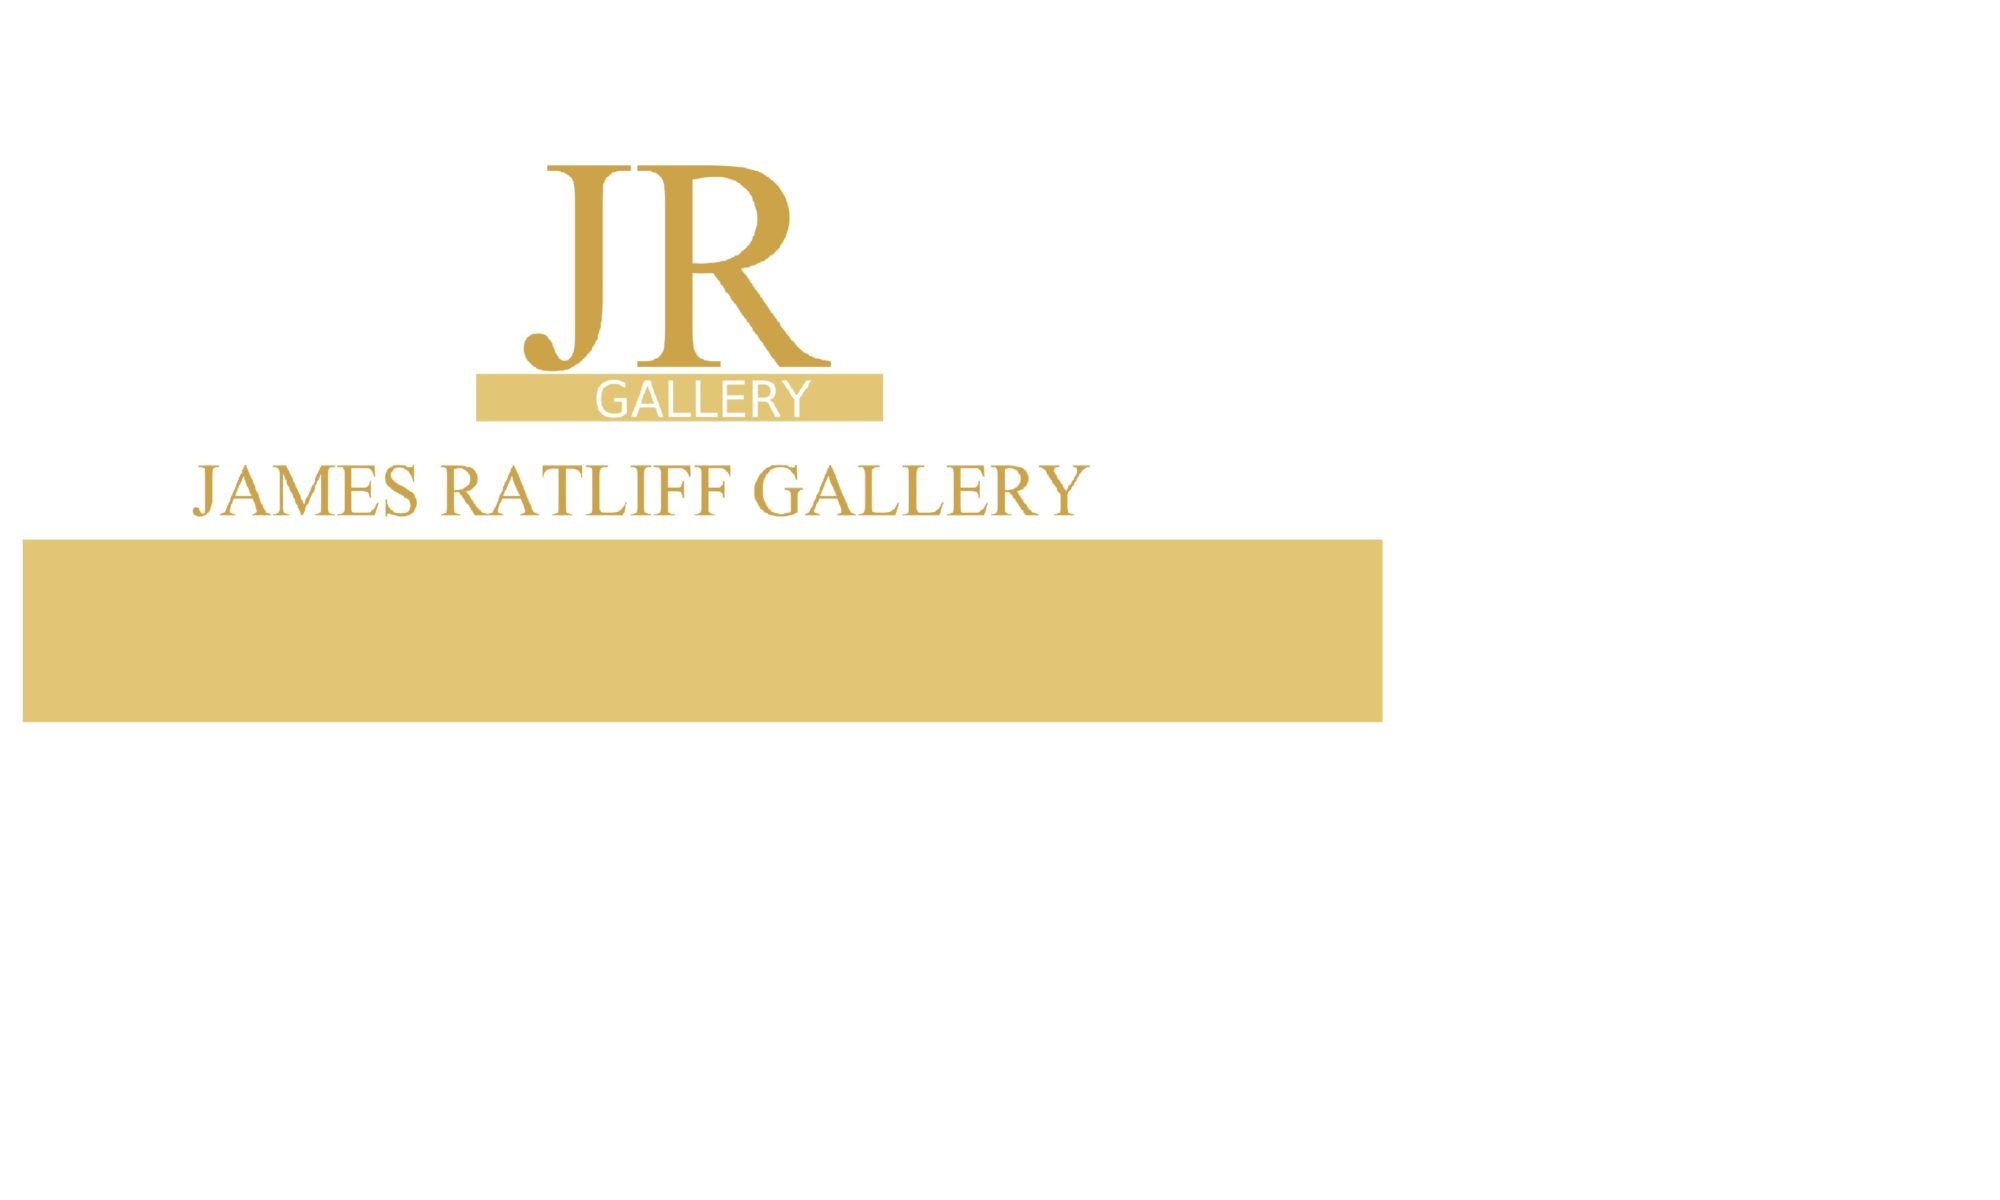 James Ratliff Gallery